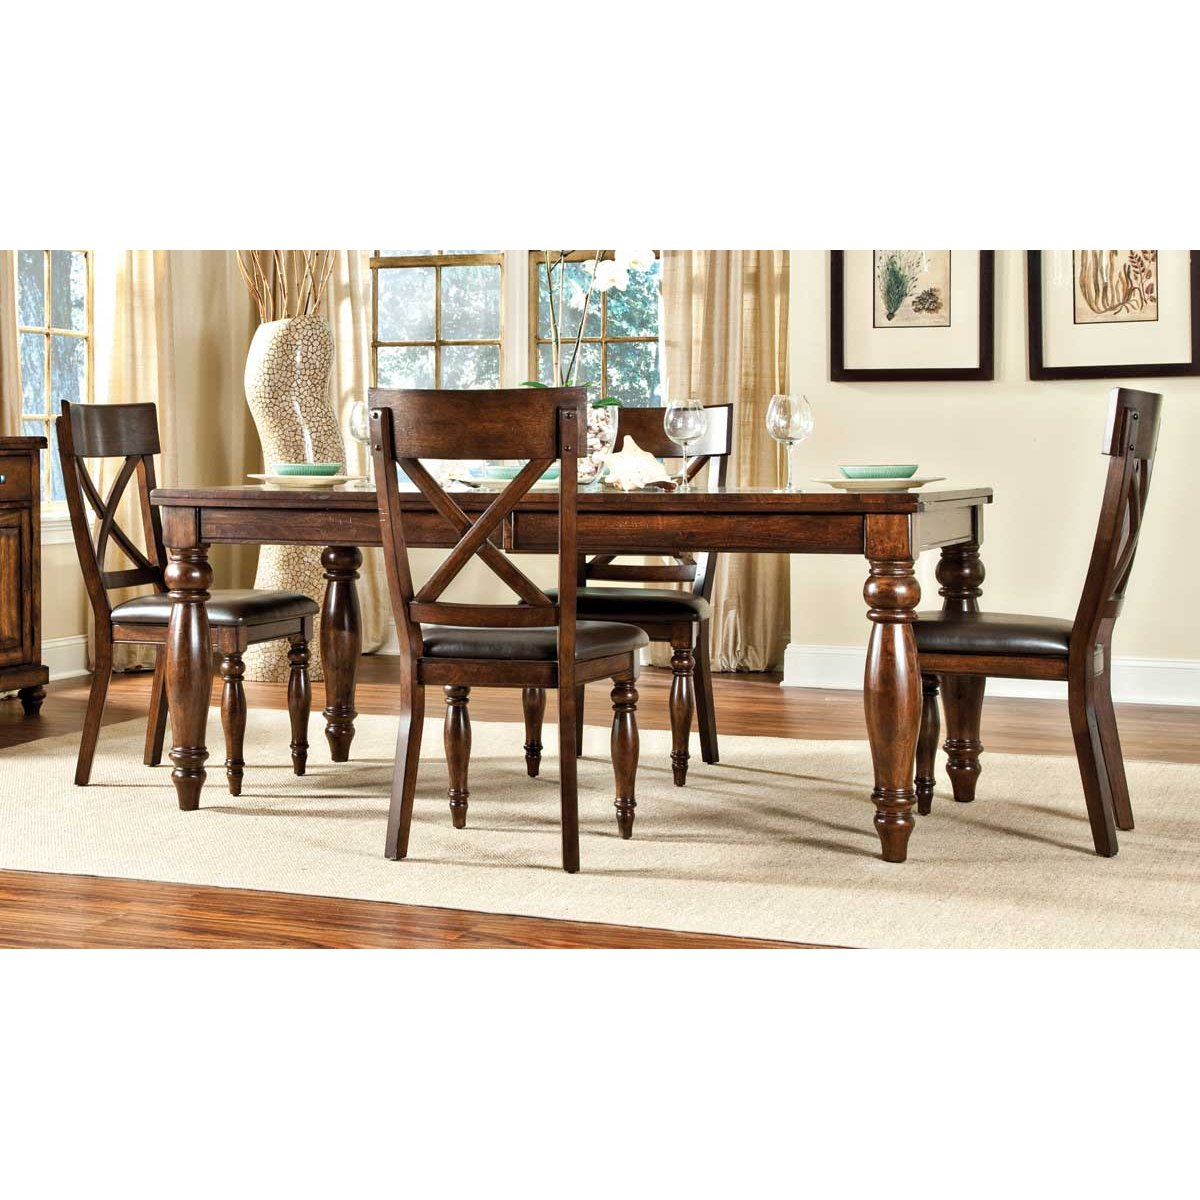 Kingston raisin 5 piece dining set rcwilley image1 for 5 piece dining room set with bench